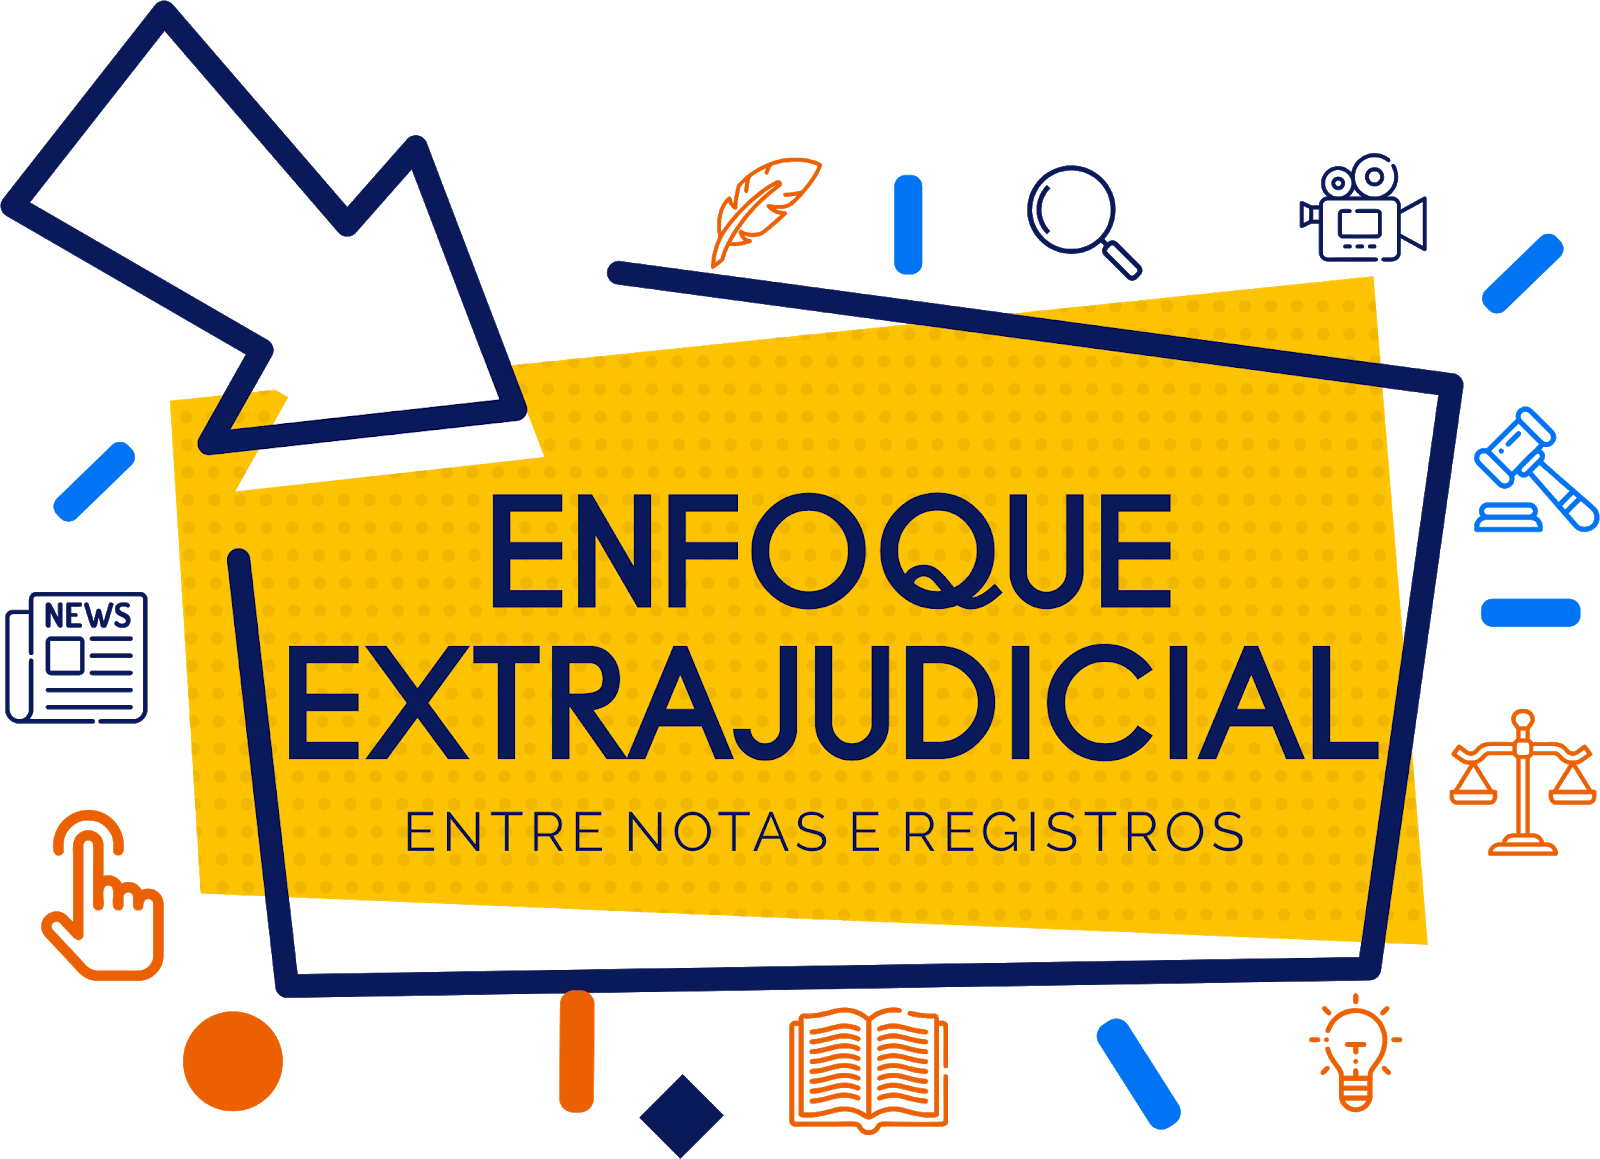 Enfoque Extrajudicial